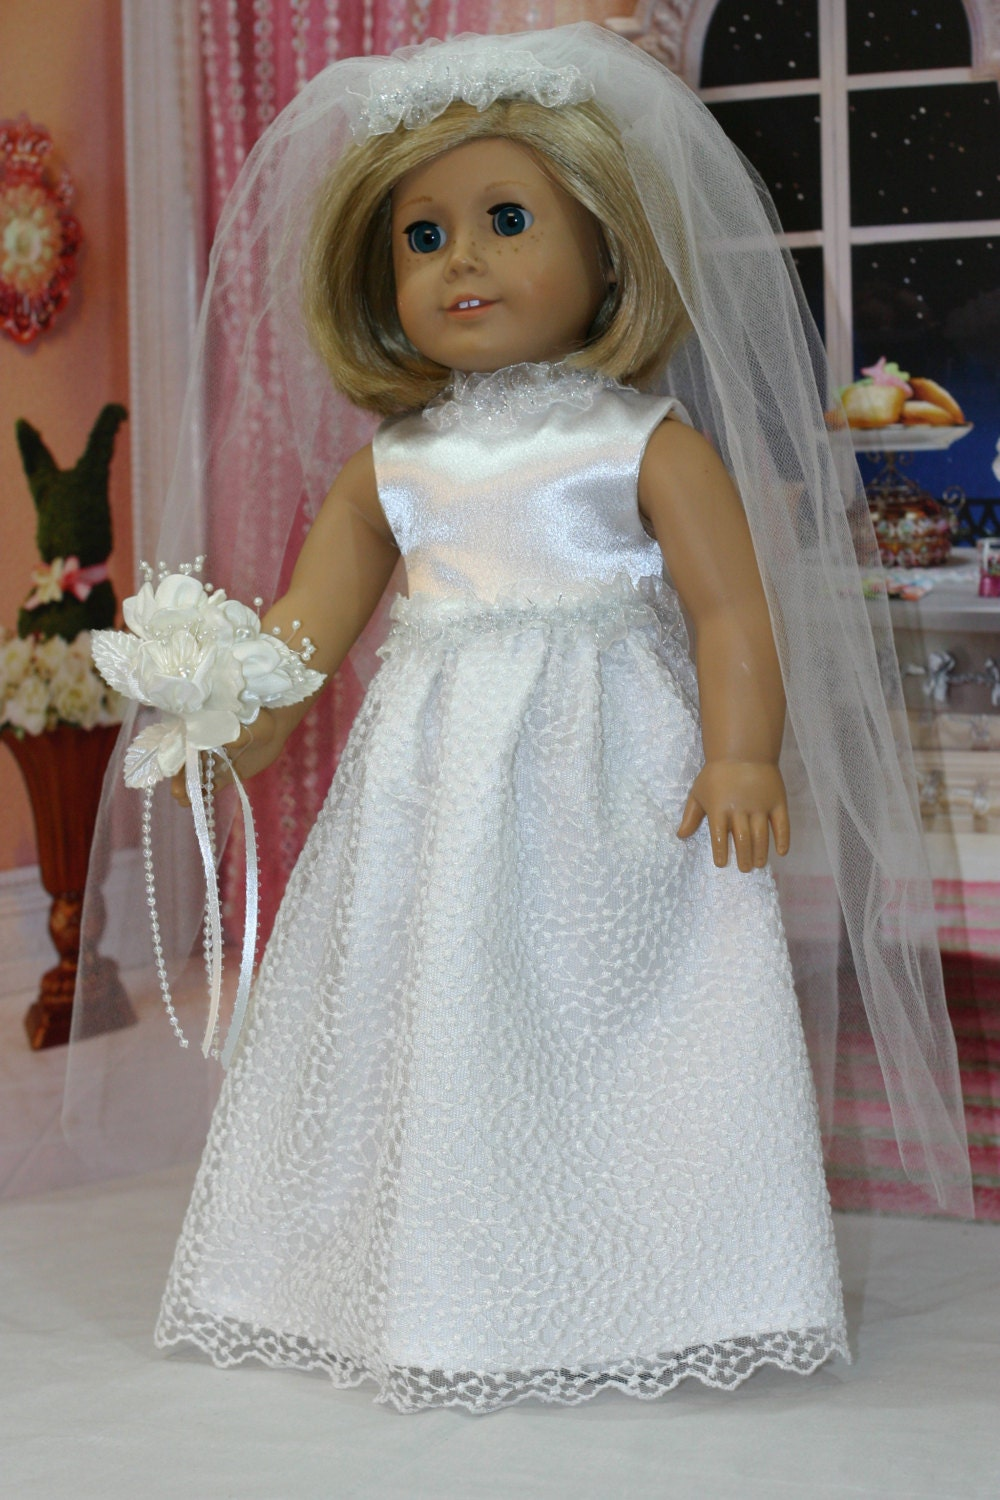 American girl wedding gown 18 inch doll wedding dress full for American girl wedding dress